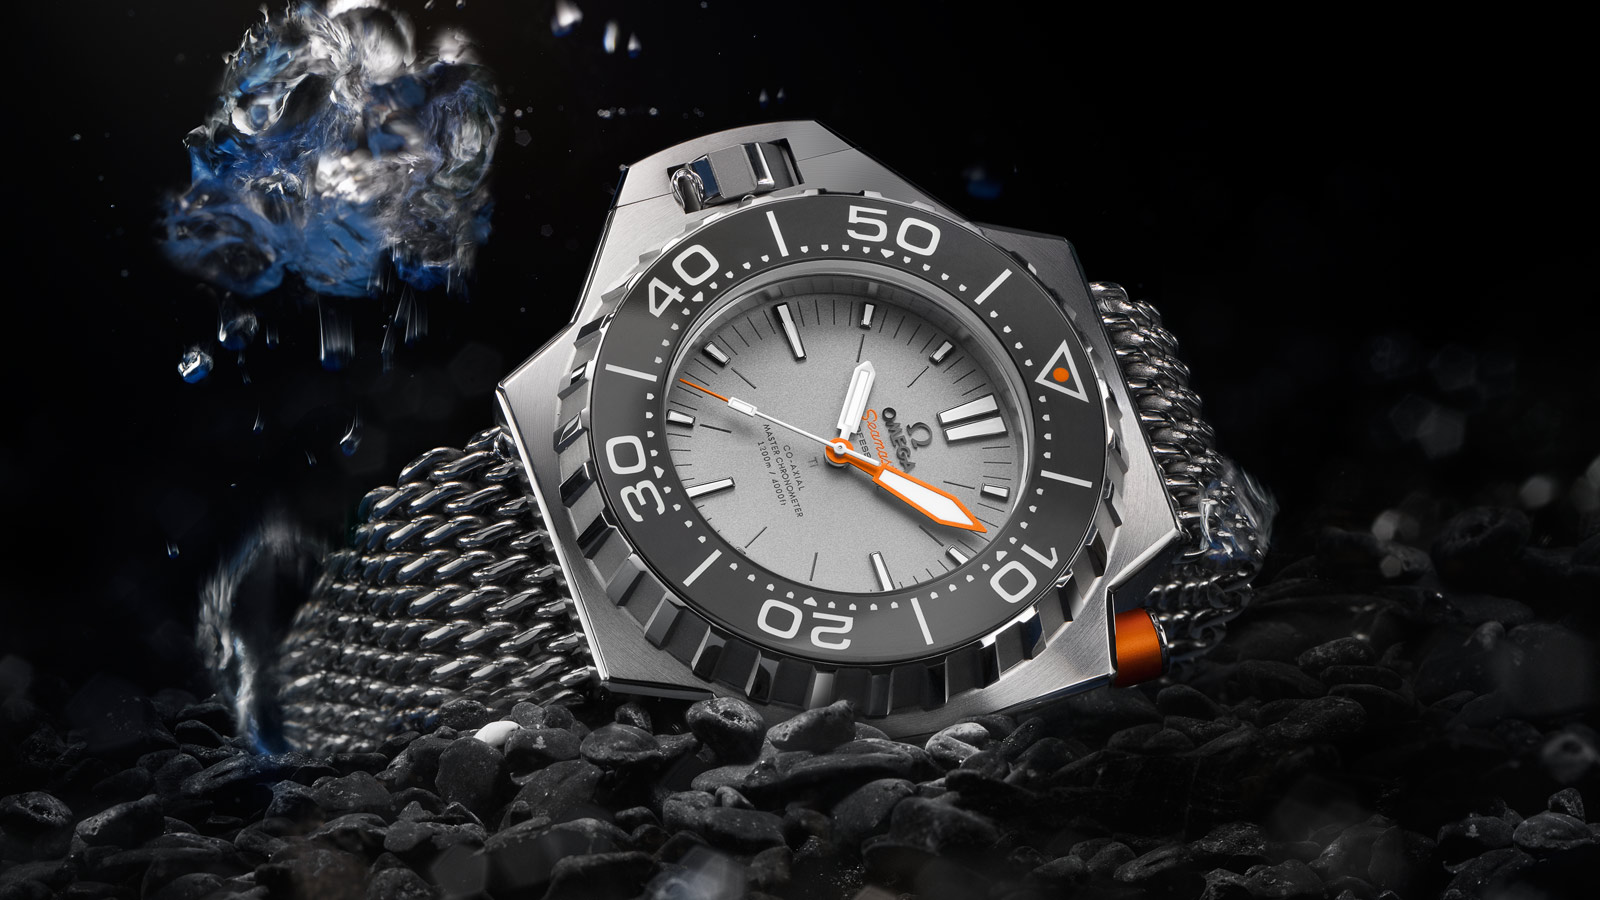 Seamaster Ploprof 1200M Ploprof 1200M Omega Co‑Axial Master Chronometer 55 x 48 mm - 227.90.55.21.99.001 - View 1